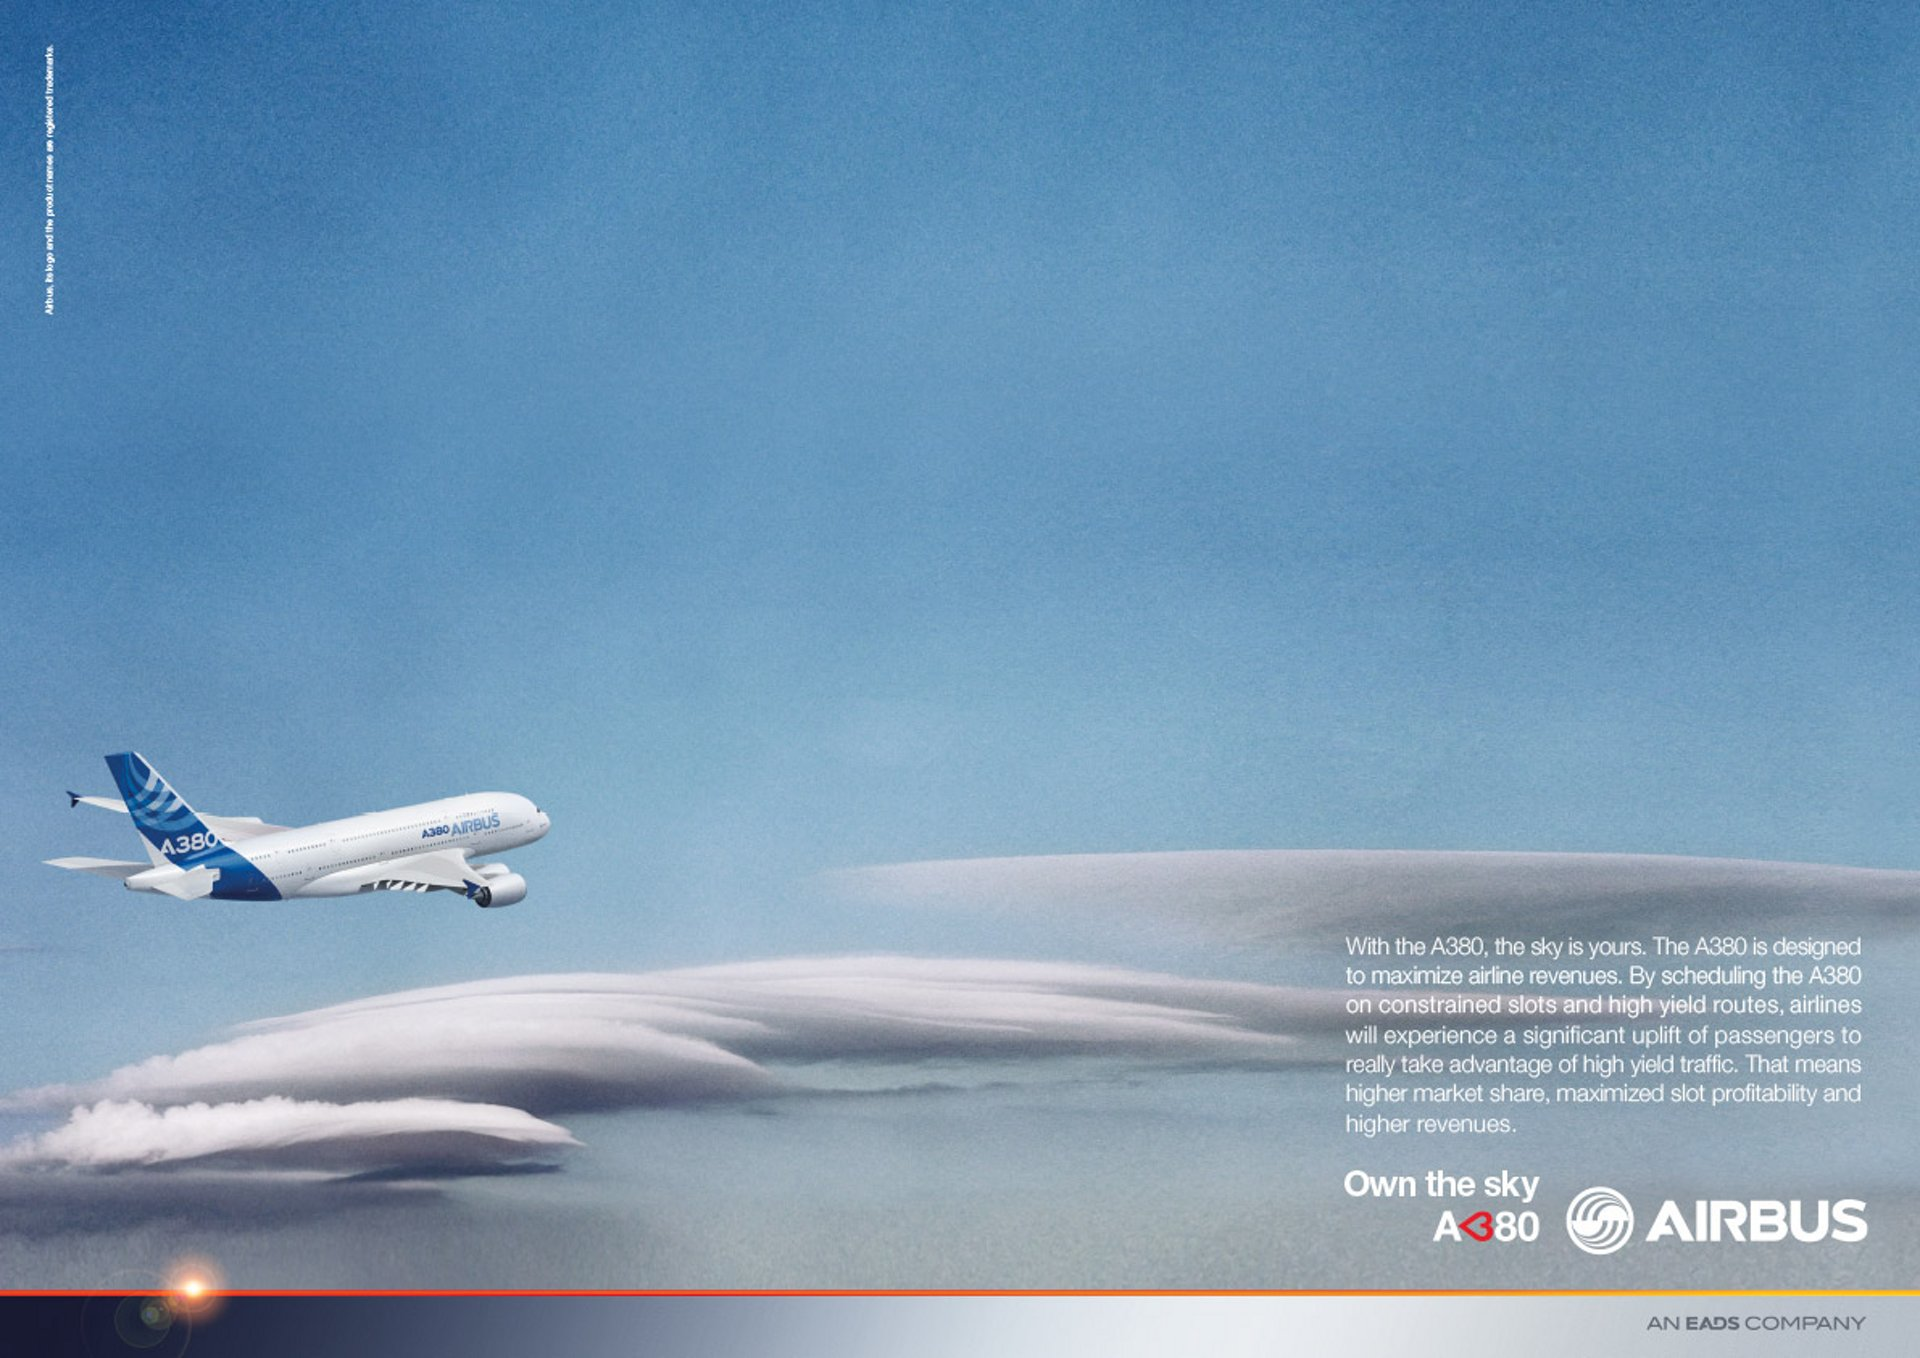 A380 Own The Sky Yield